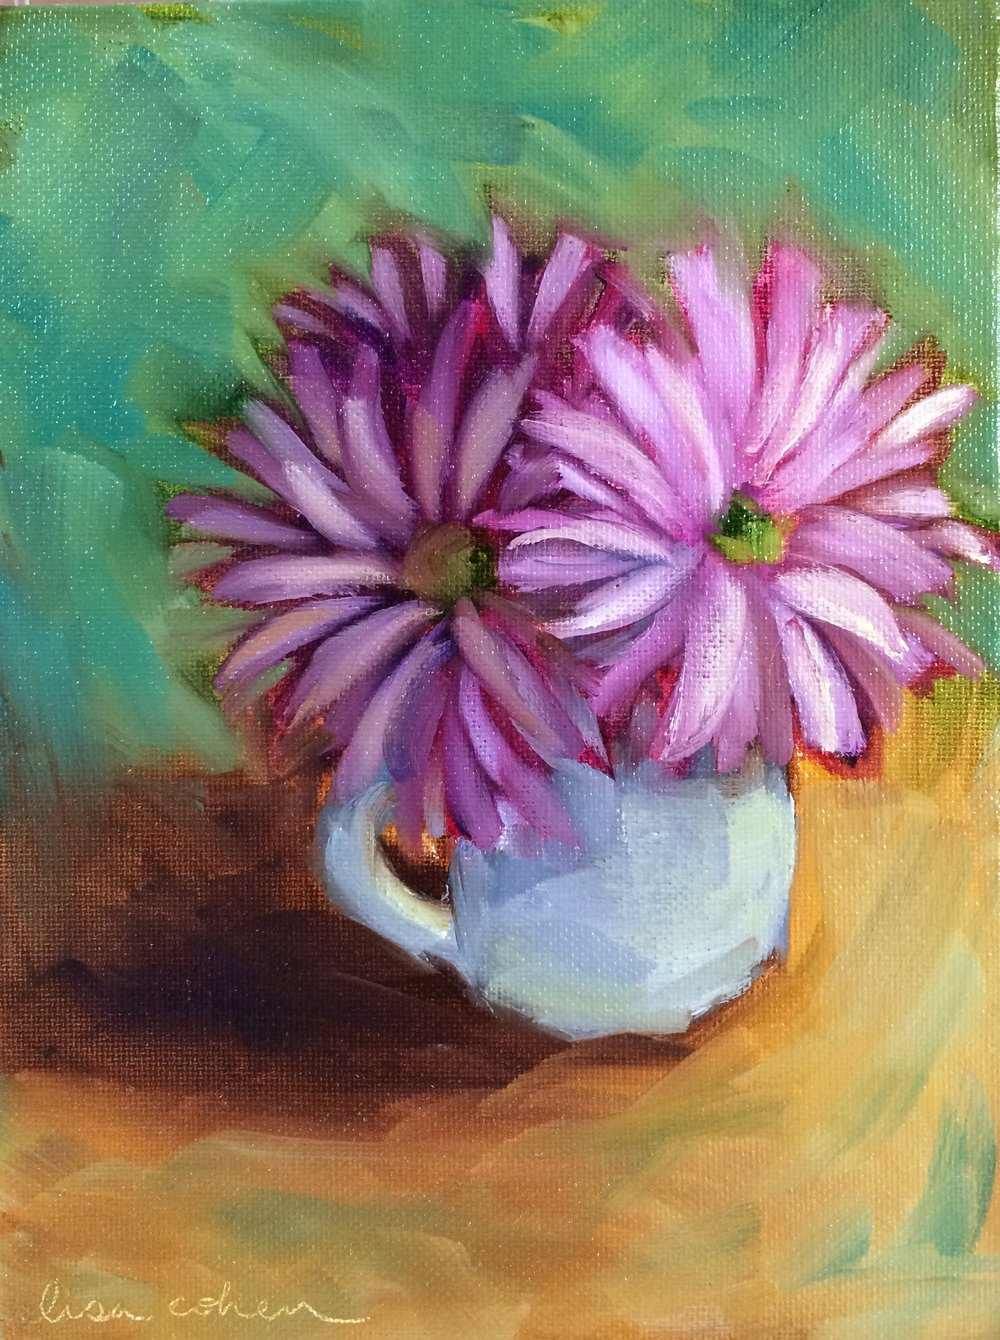 119 Teacup Flowers - Expressive Oil Painting - Lisa Cohen.jpg